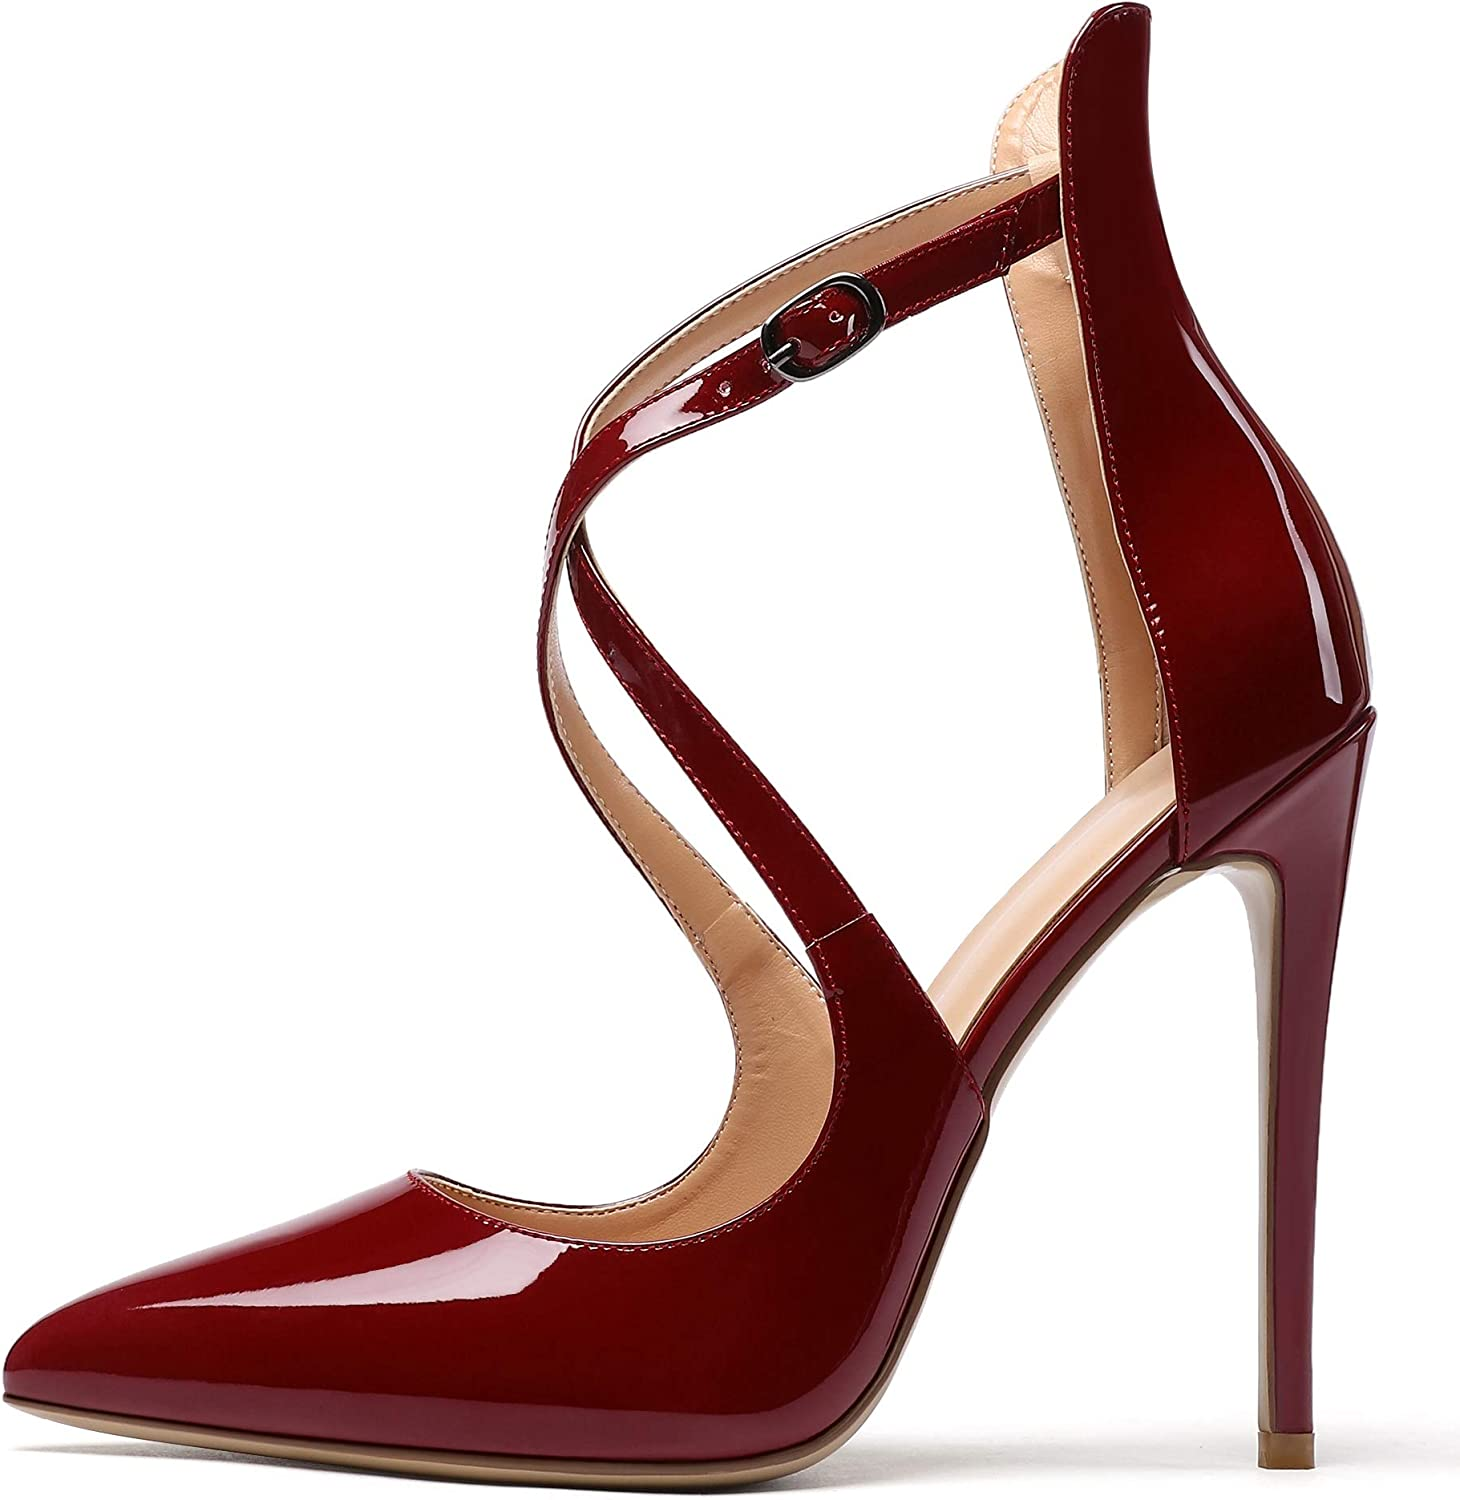 Stiletto High Heel Pointed Toe Pumps Ankle Strap Women Leather Shoe